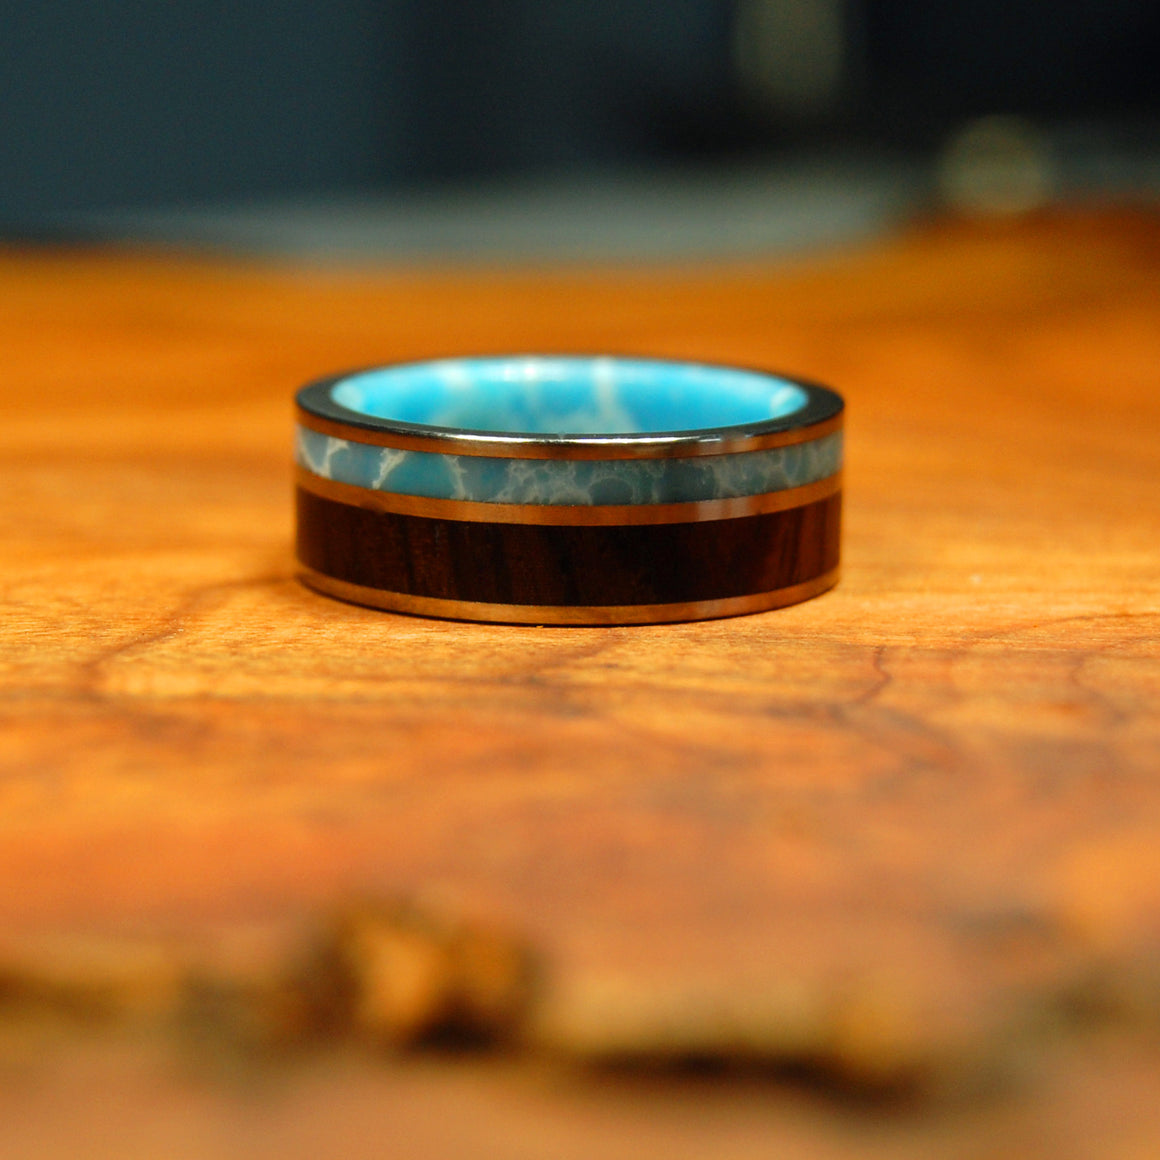 DOMINICAN CANOPY | Larimar Stone Handcrafted Wood & Titanium Wedding Rings - Minter and Richter Designs